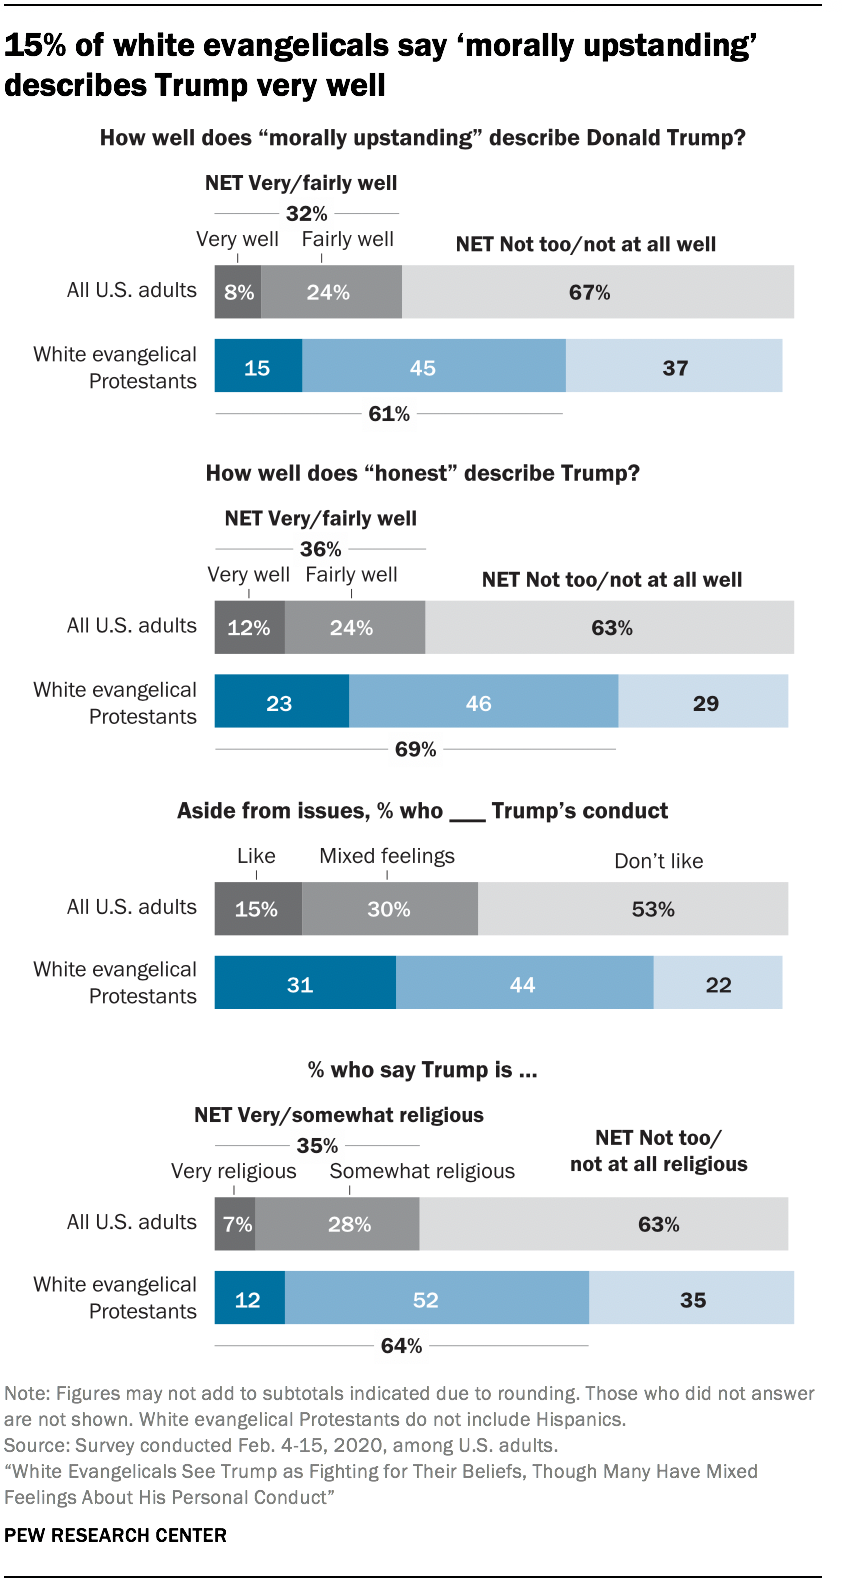 15% of white evangelicals say 'morally upstanding' describes Trump very well